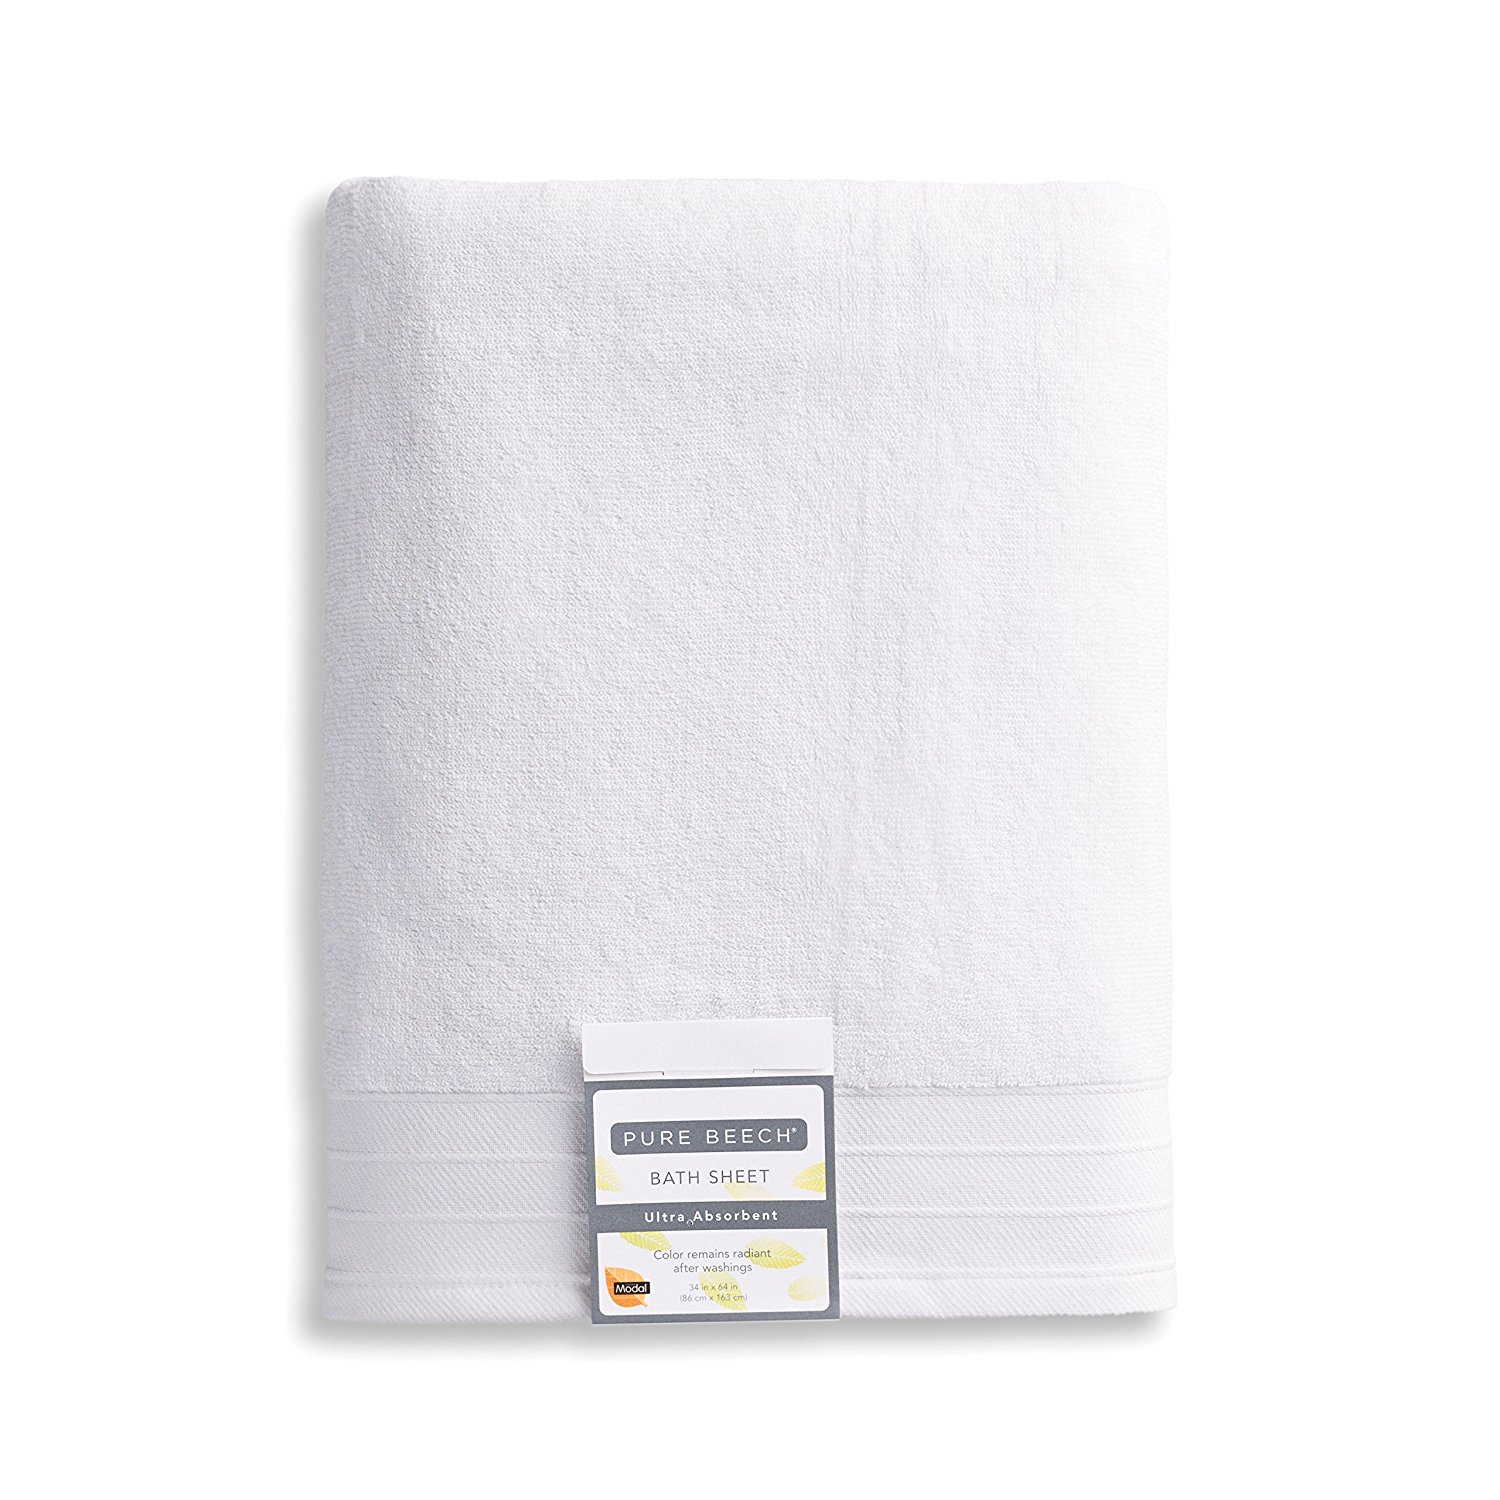 Pure Beech 2-Piece Bath Sheet Towel Set – Cotton Modal Blend - Hotel Quality, Bright, Super Soft and Highly Absorbent - White